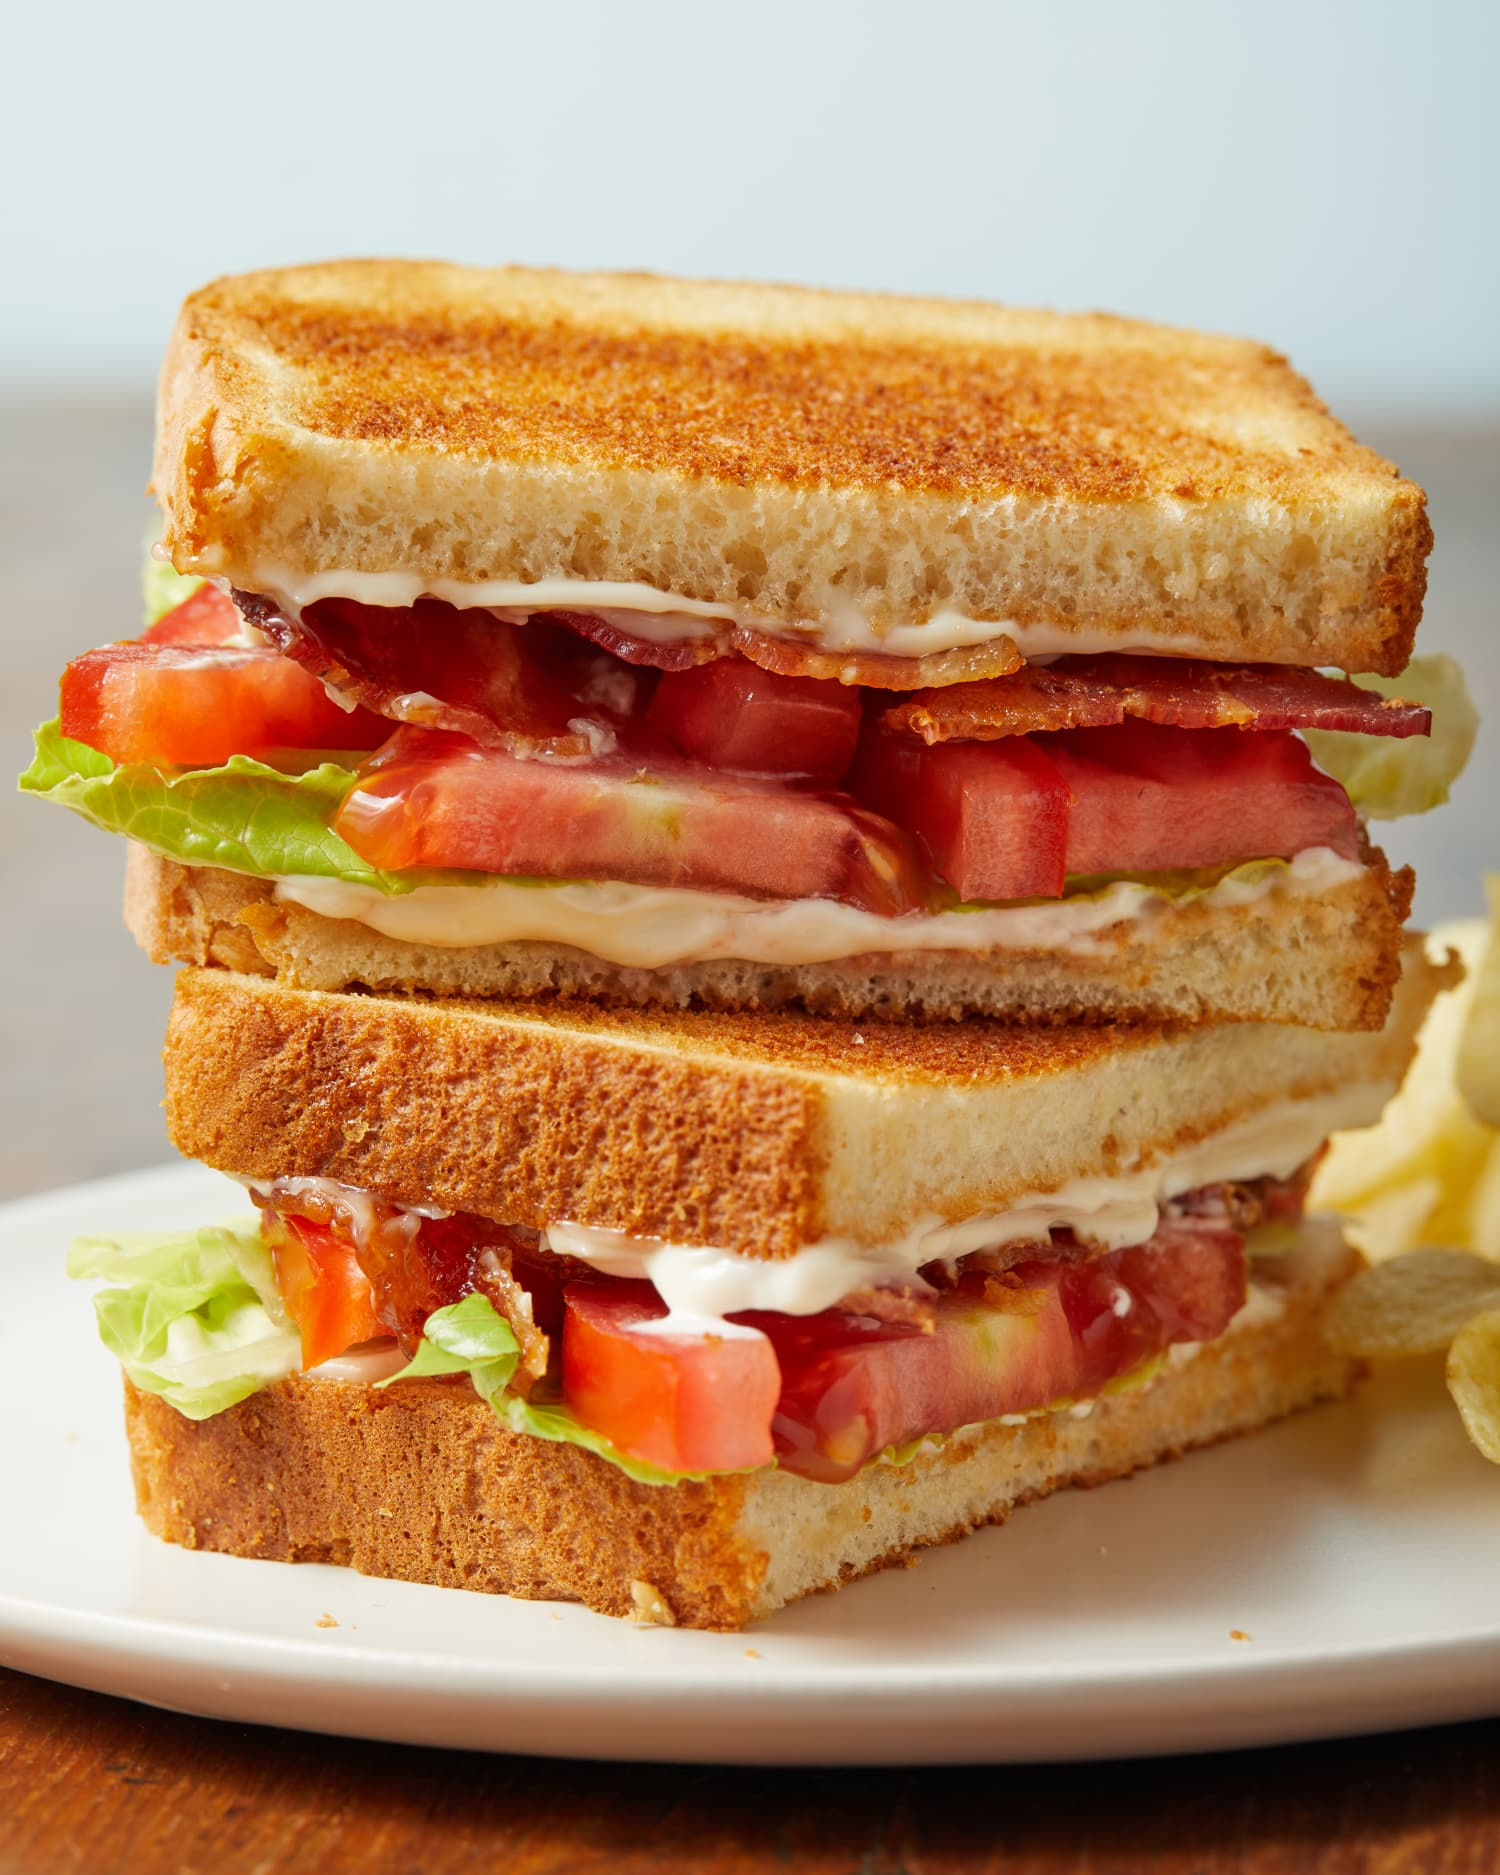 A BLT Is the Ultimate Summer Sandwich. Here's How to Make the Very Best One.